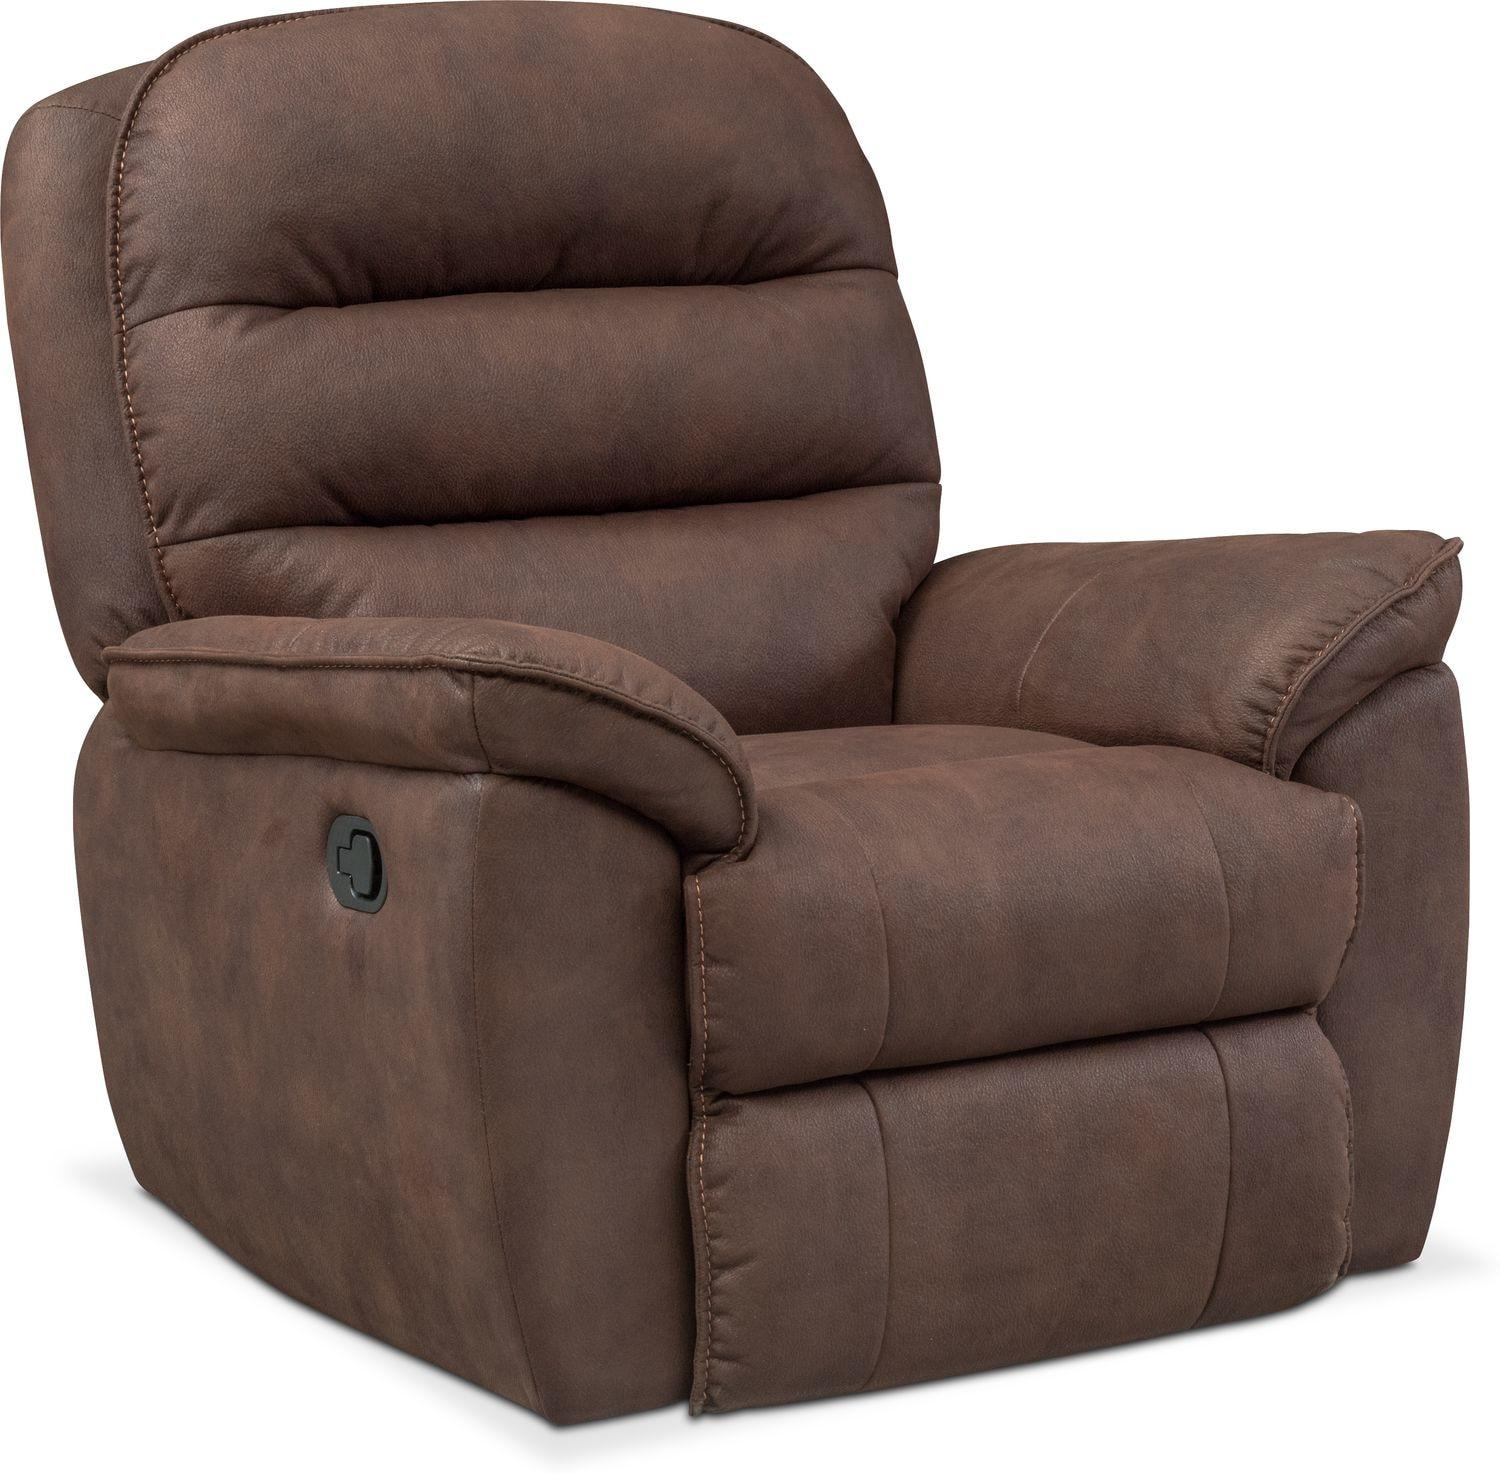 Recliners & Rockers | Value City Furniture | Value City Furniture For Camo Reclining Sofas (View 20 of 20)